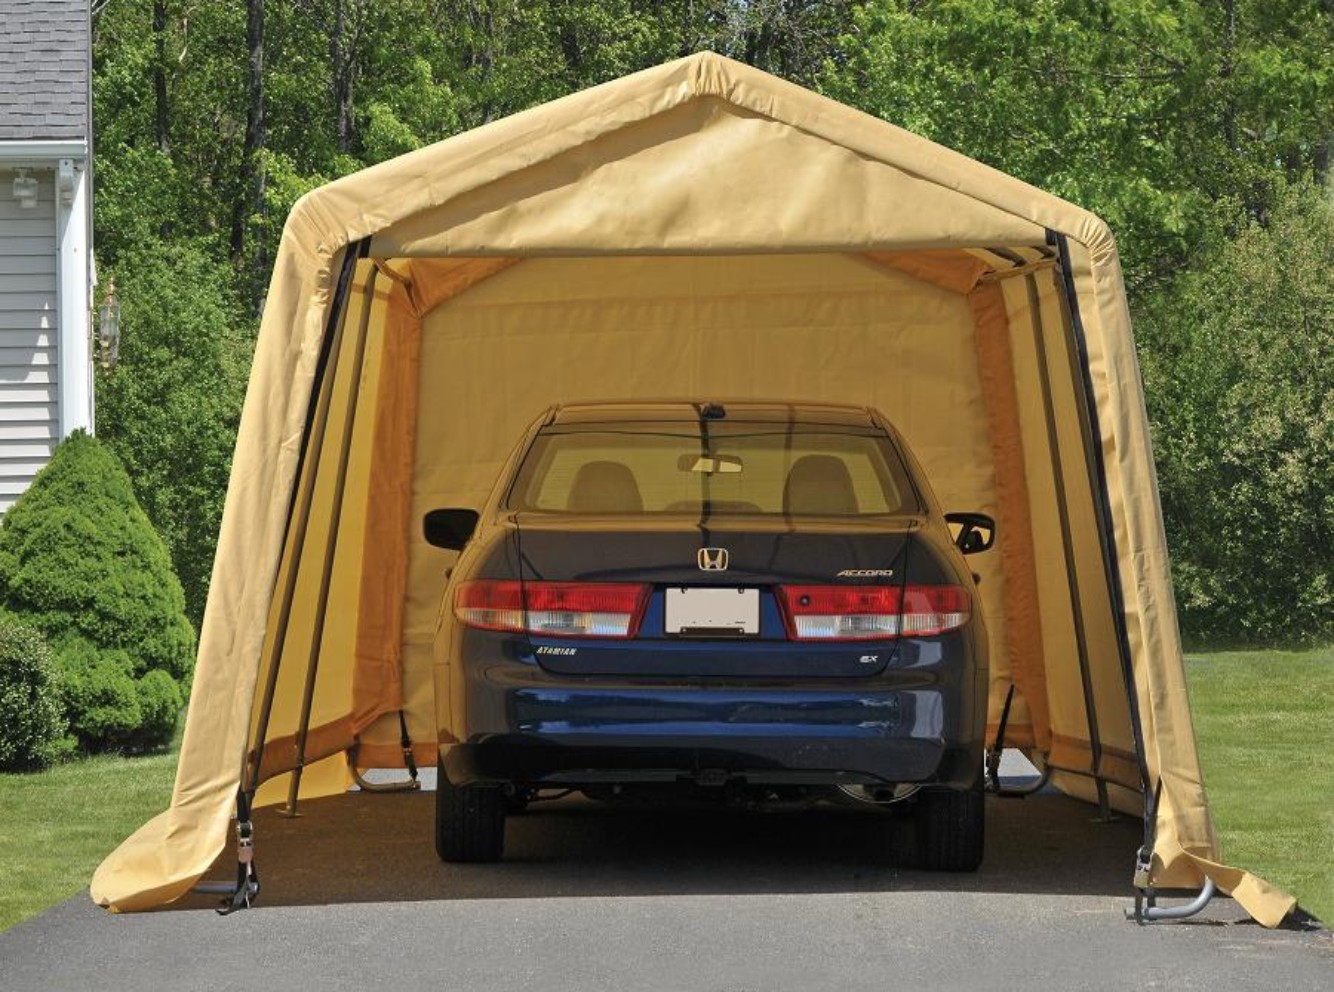 SS1010 car parking shed & Sheltersportable garagestentshedsoutdoor storagelarge tents ...